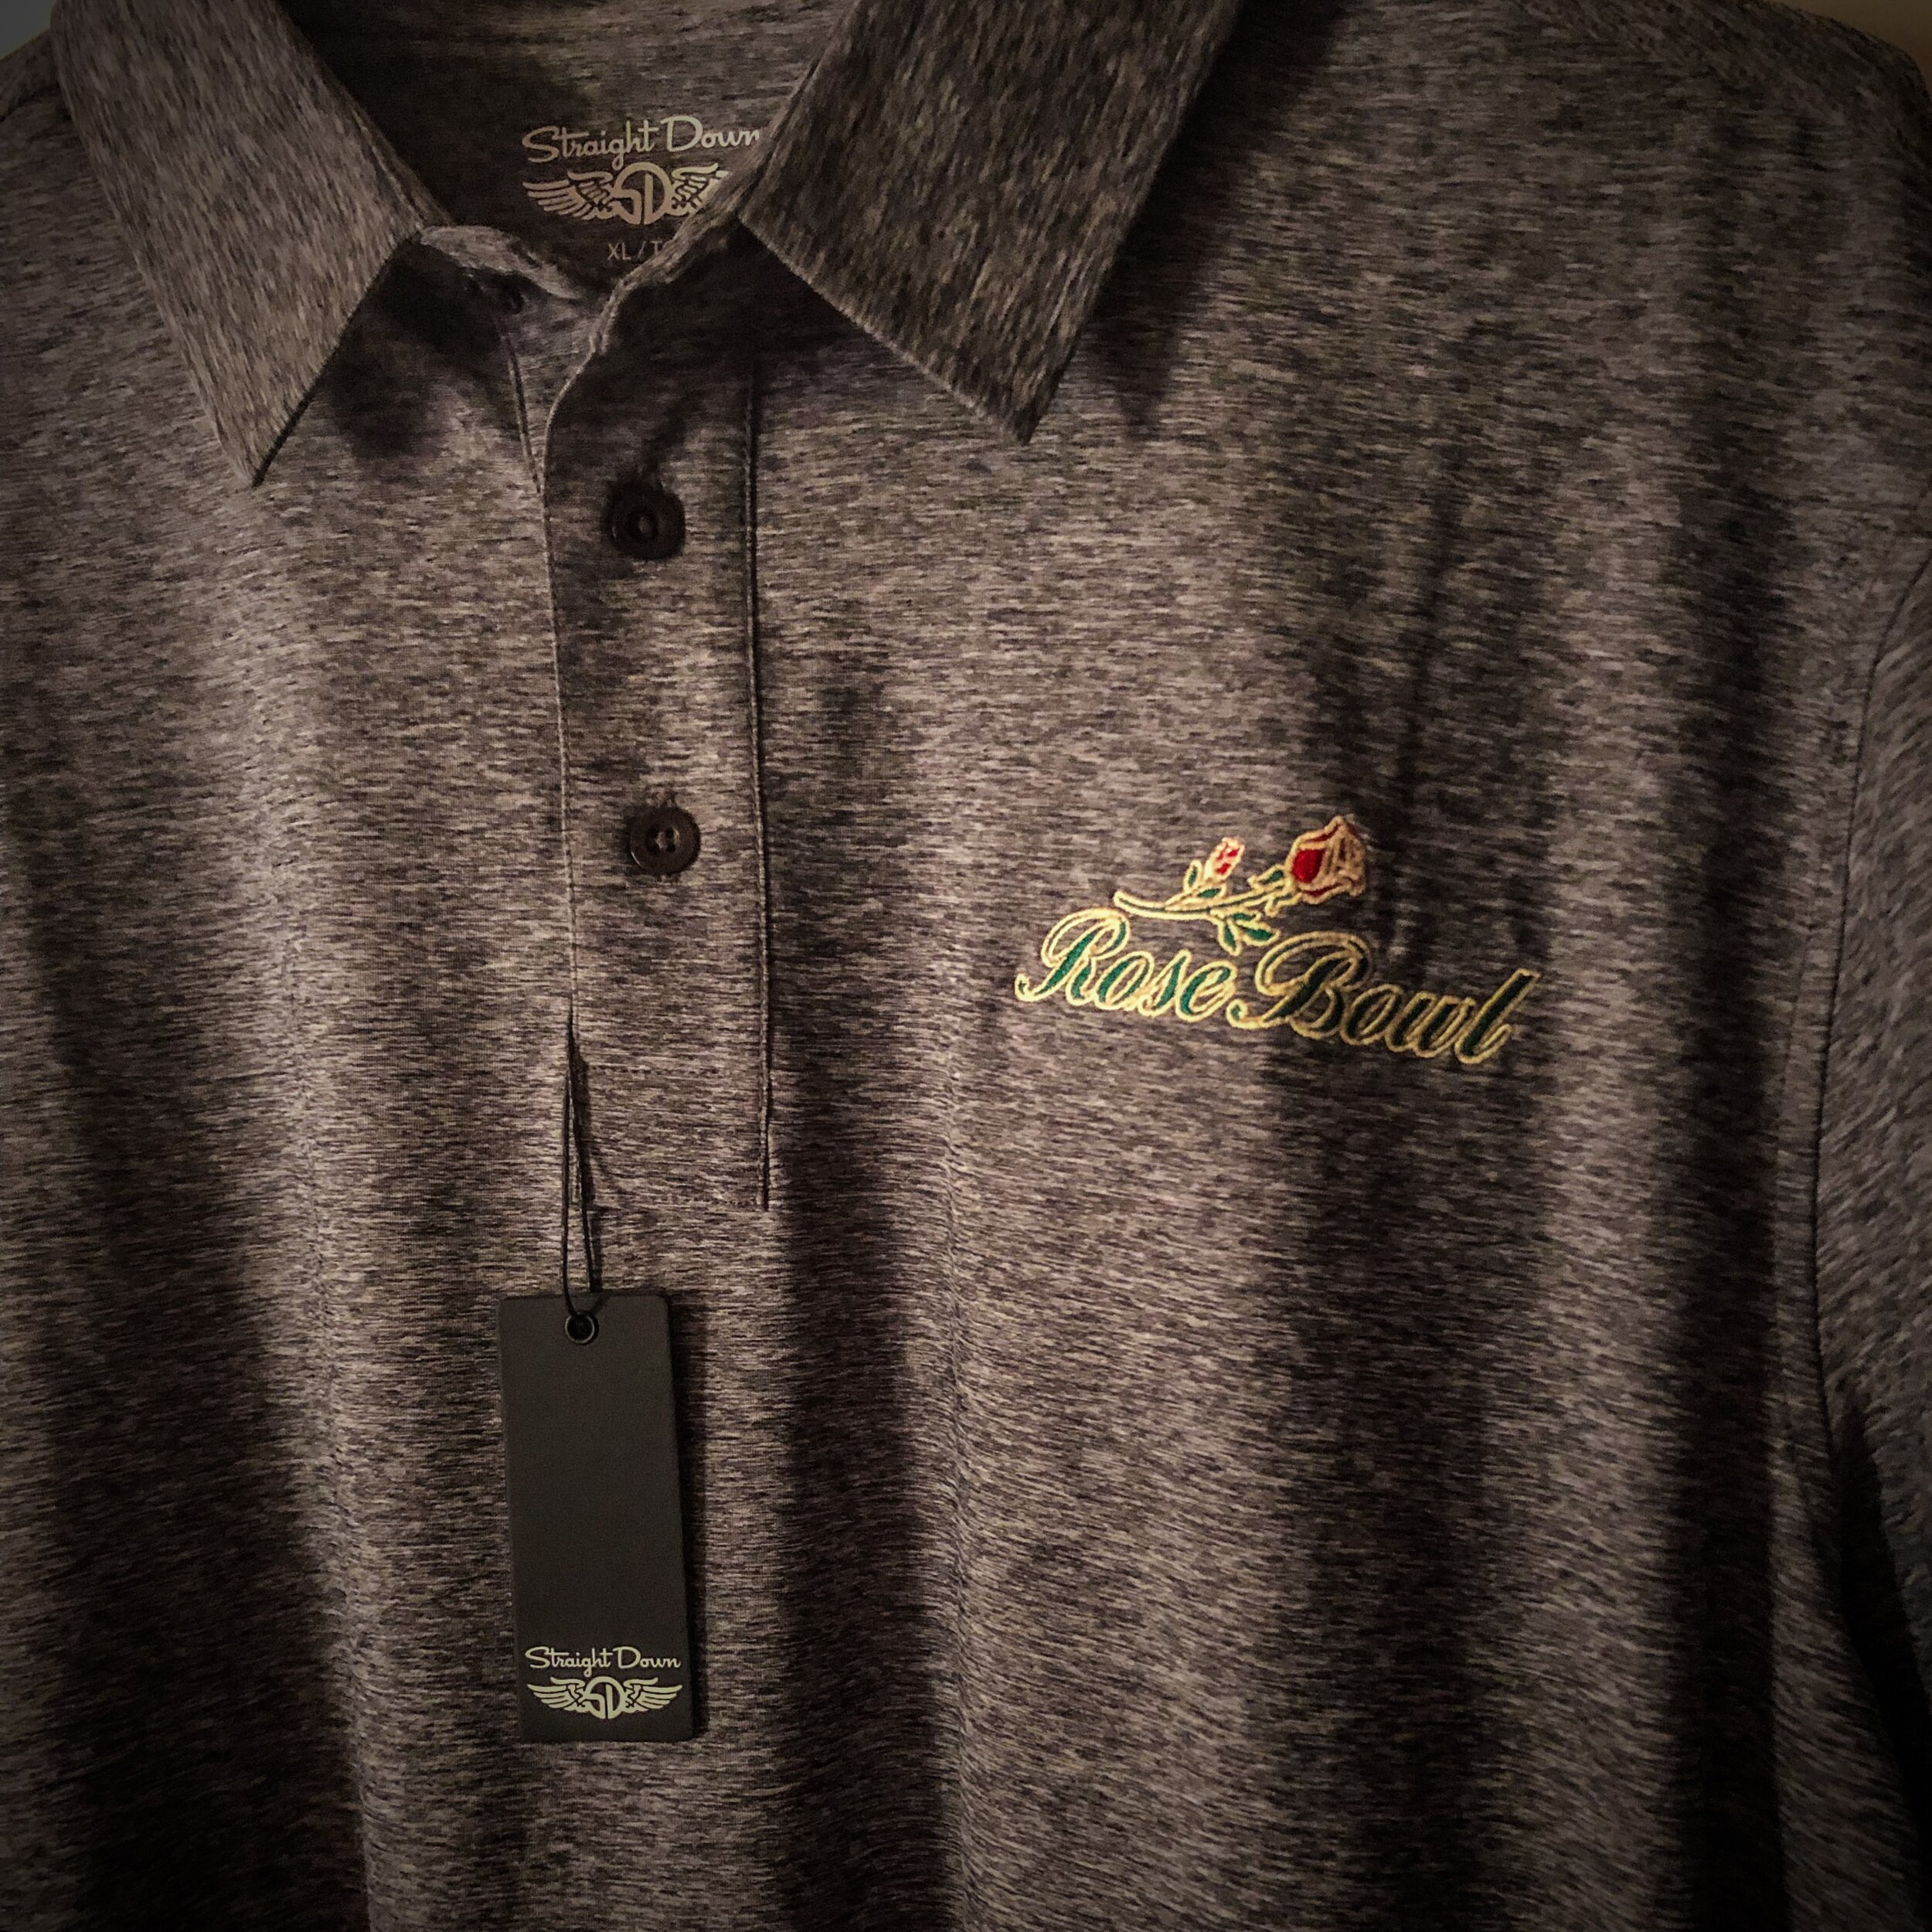 Embroidered Golf Polos for The Rose Bowl